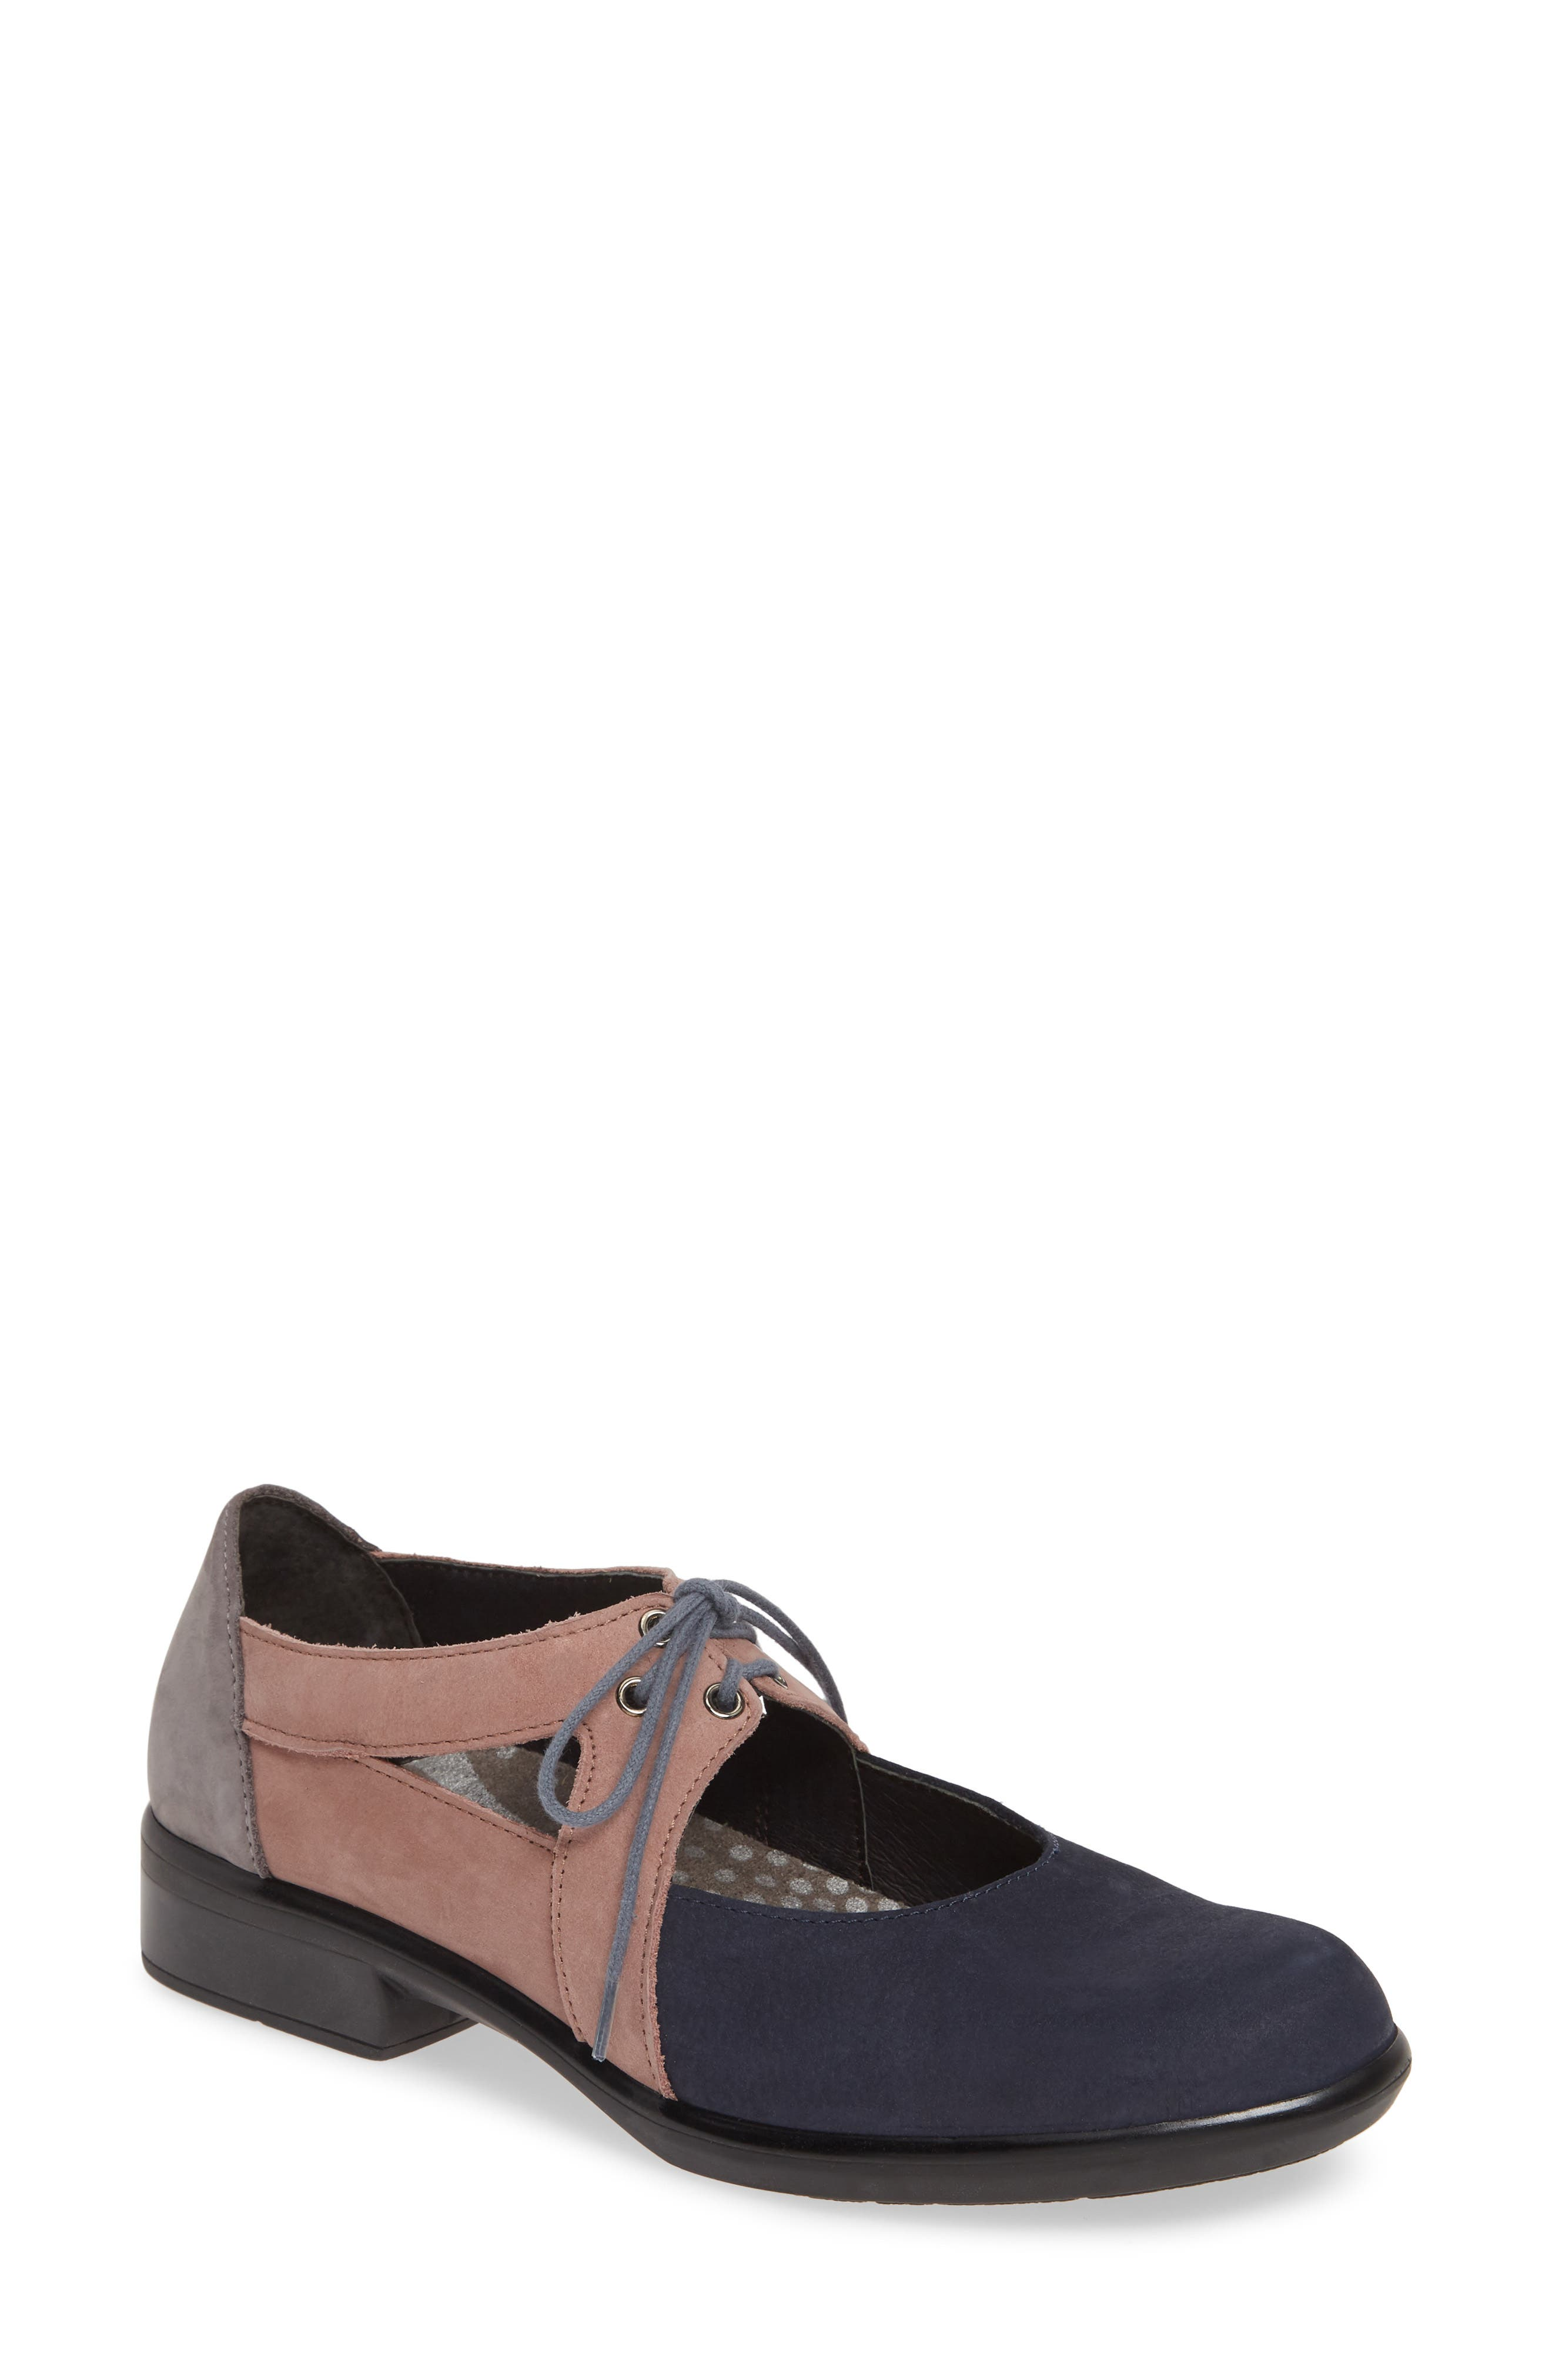 Naot Alisio Lace-Up Shoe, Blue